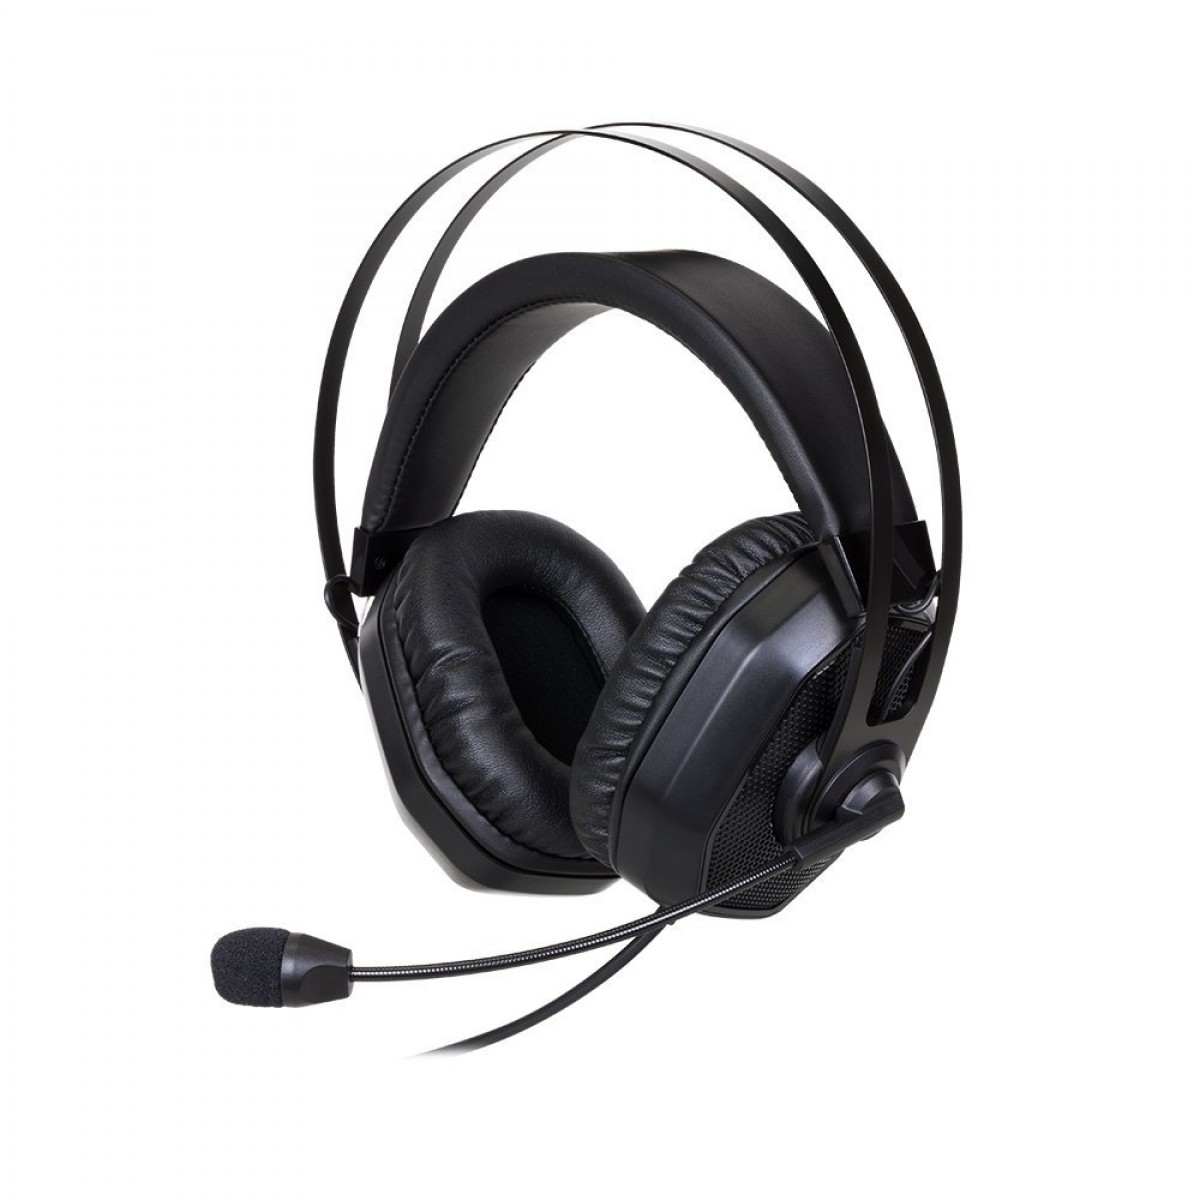 COOLER MASTER MasterPulse MH320 Gaming Headset